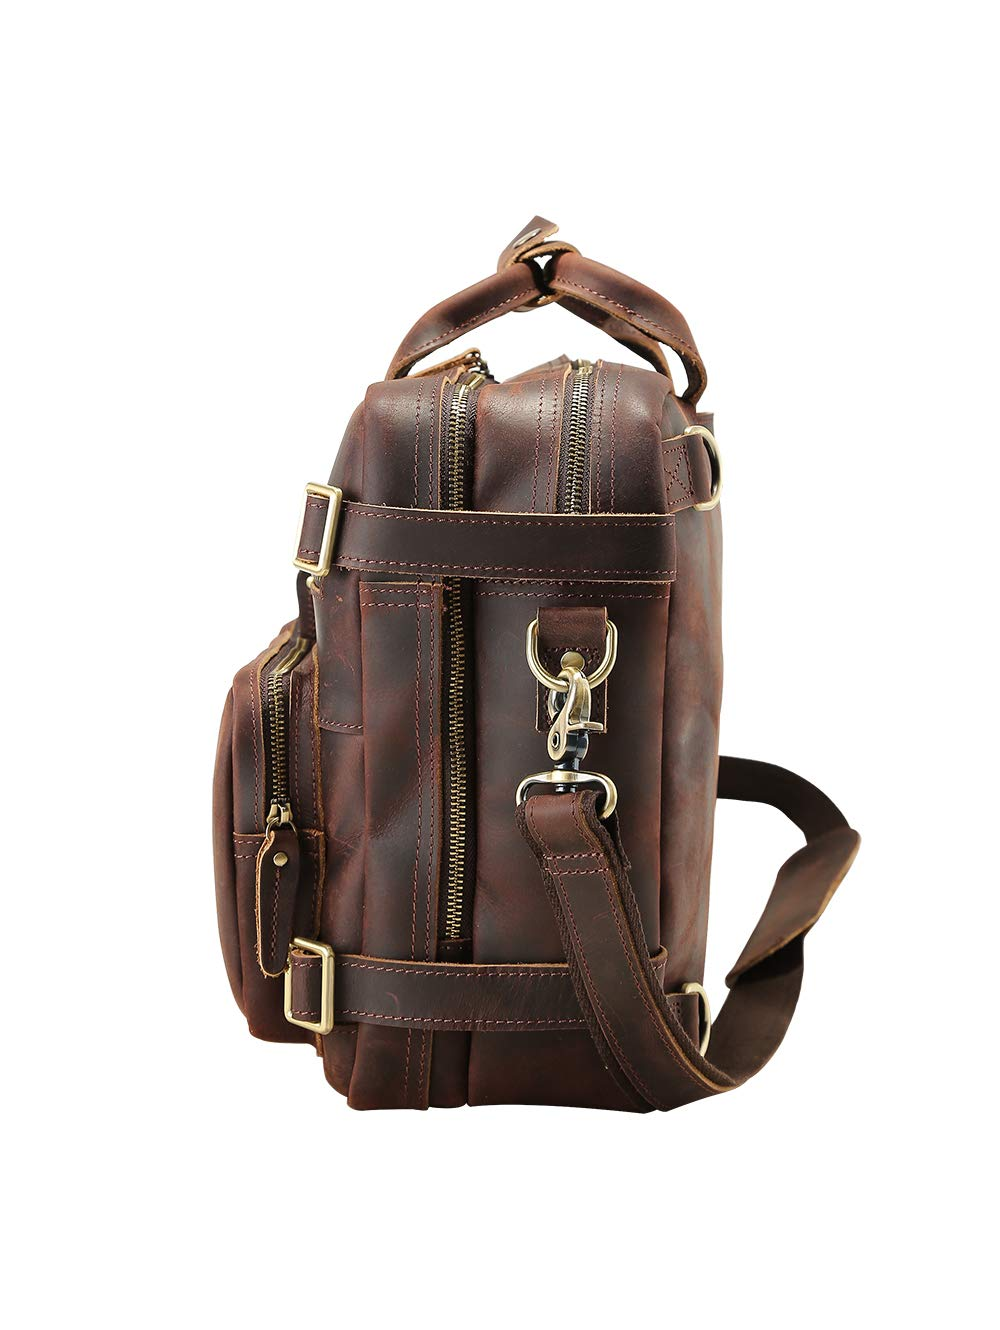 The First Layer of High-Grade Leather Handmade Retro Trend Brown TIDING-3567 Mens Fashion Travel Backpack Computer Outdoor Bag Portable and Shoulder Two Ways to Use